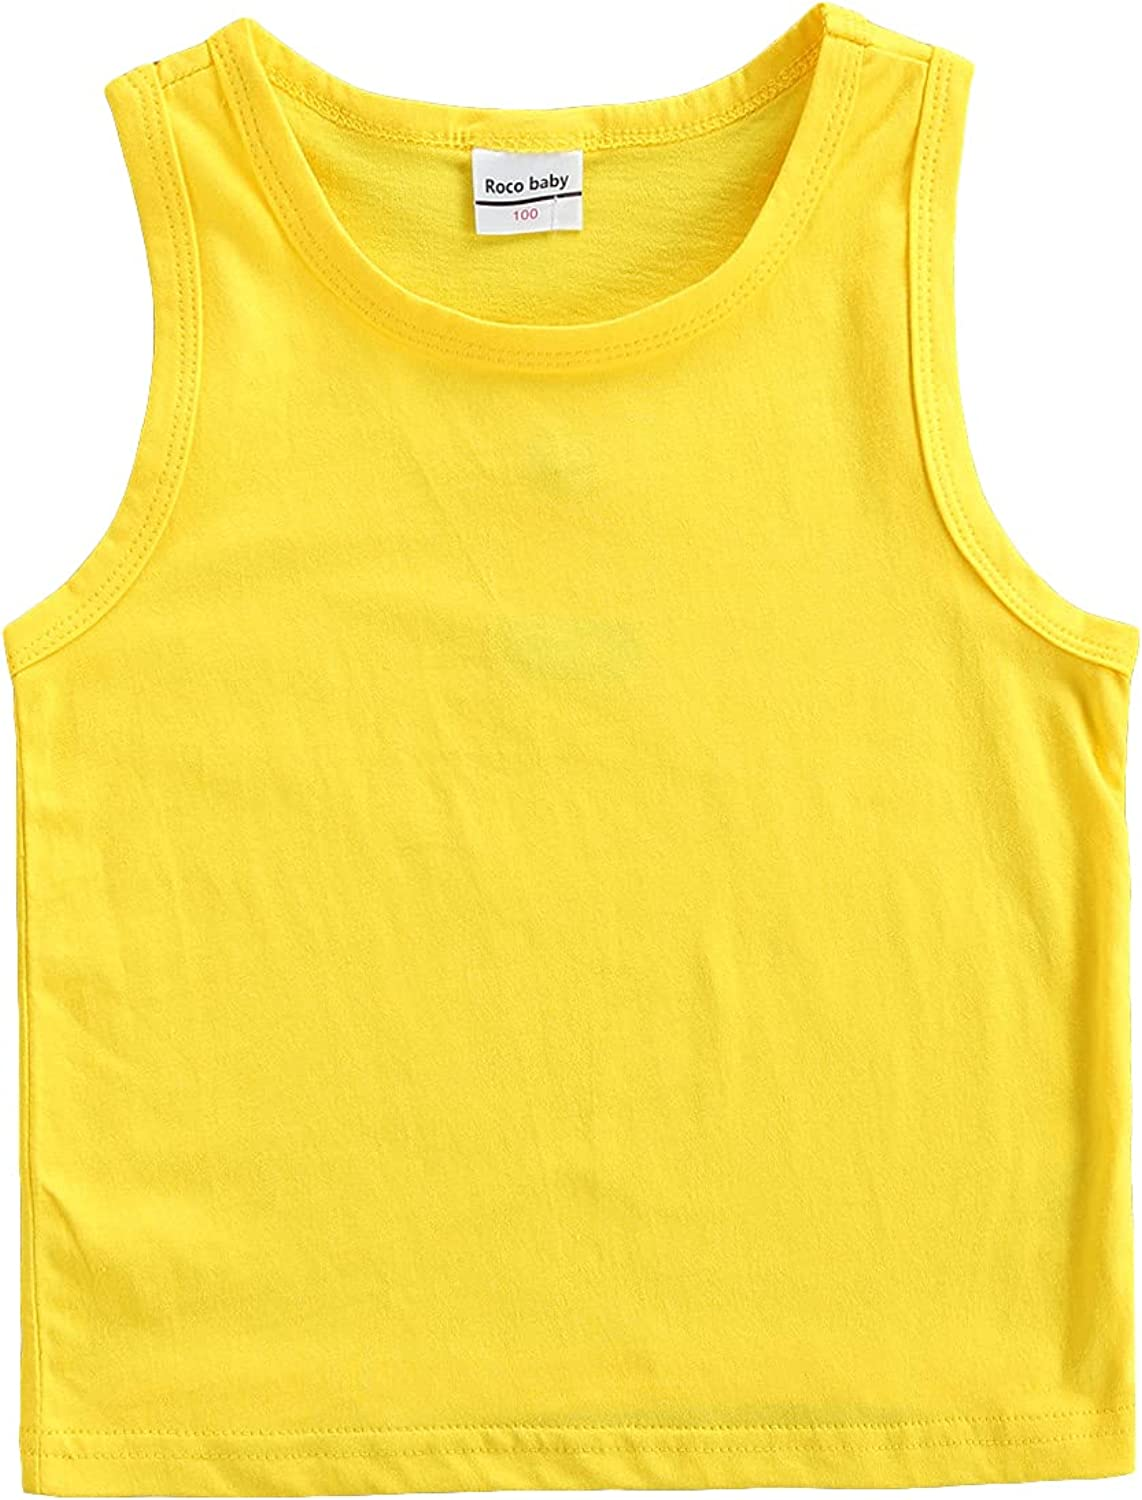 ZIYIXIN Unisex In stock Toddler Boys and Girls Casual Sleeveless Sports Large special price C